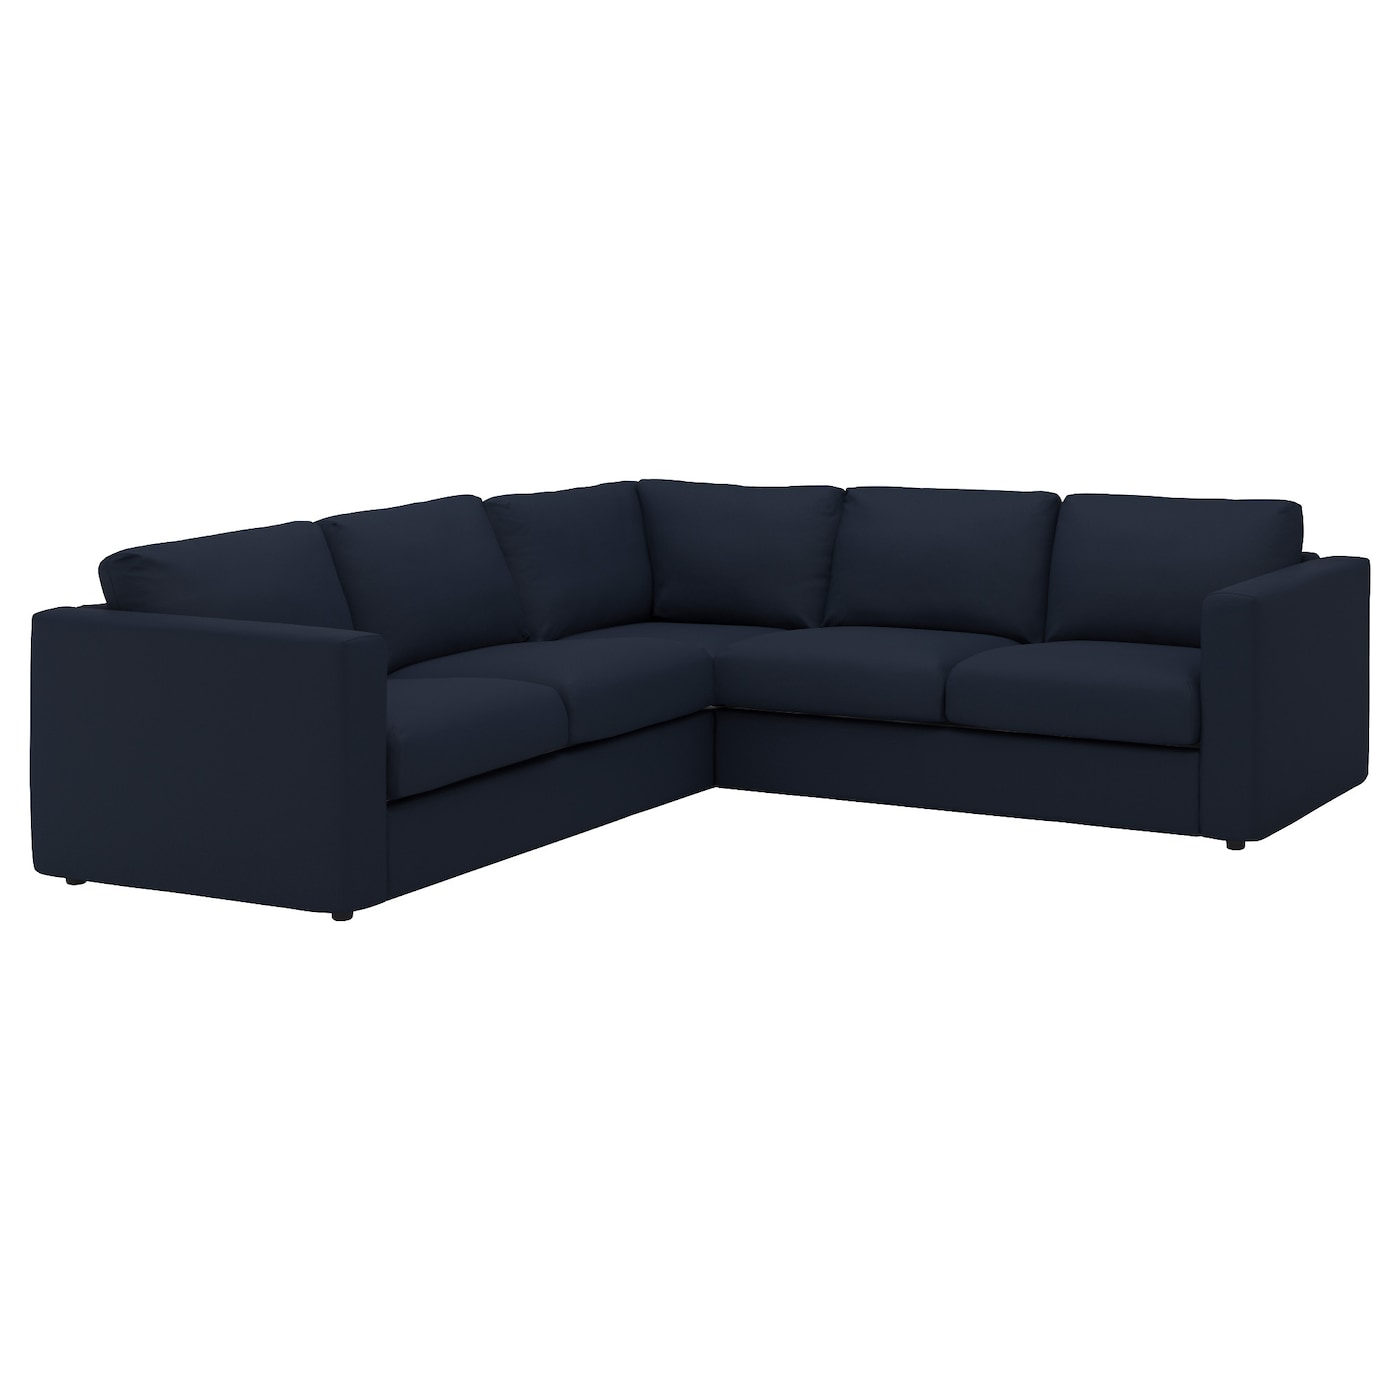 Ikea Vimle Corner Sofa 4 Seat 10 Year Guarantee Read About The Terms